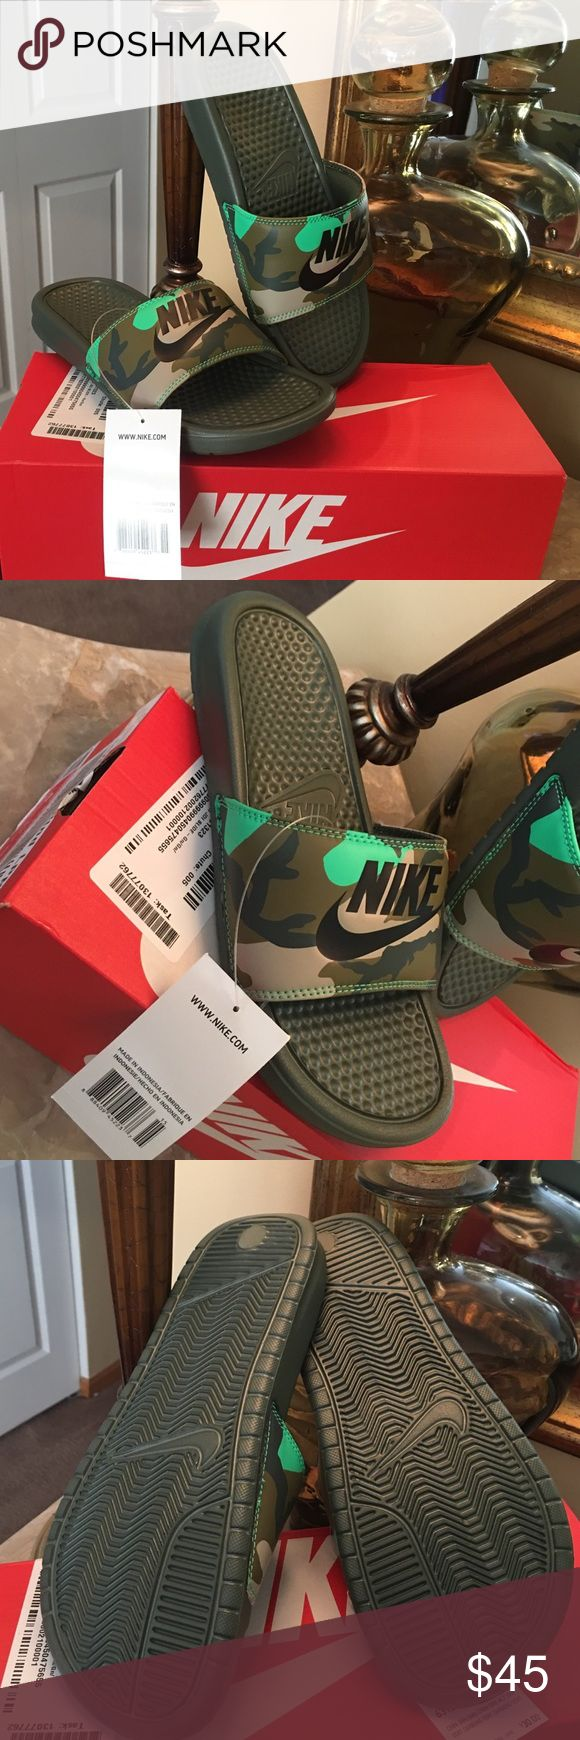 NIKE SLIDES CAMOUFLAGE CUTE KIDS SZ 6 WOMEN SZ 7 NIKE SLIDES CAMOUFLAGE CUTE KIDS SZ 6 WOMEN SZ 7 . Brand new in box very cute and comfy! Nike Shoes Sandals